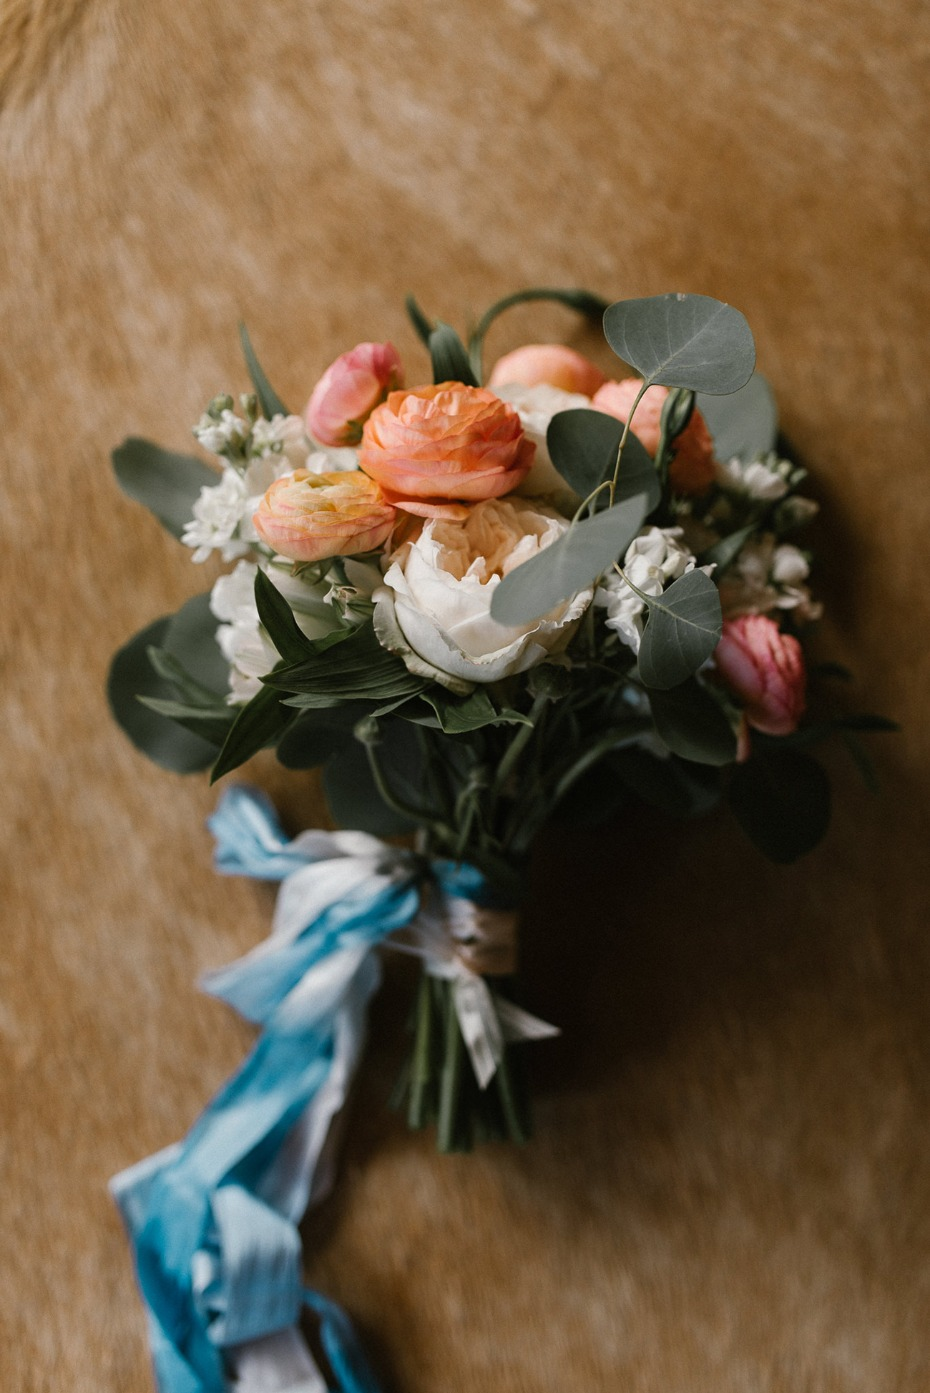 Brides bouquet with blue ribbons